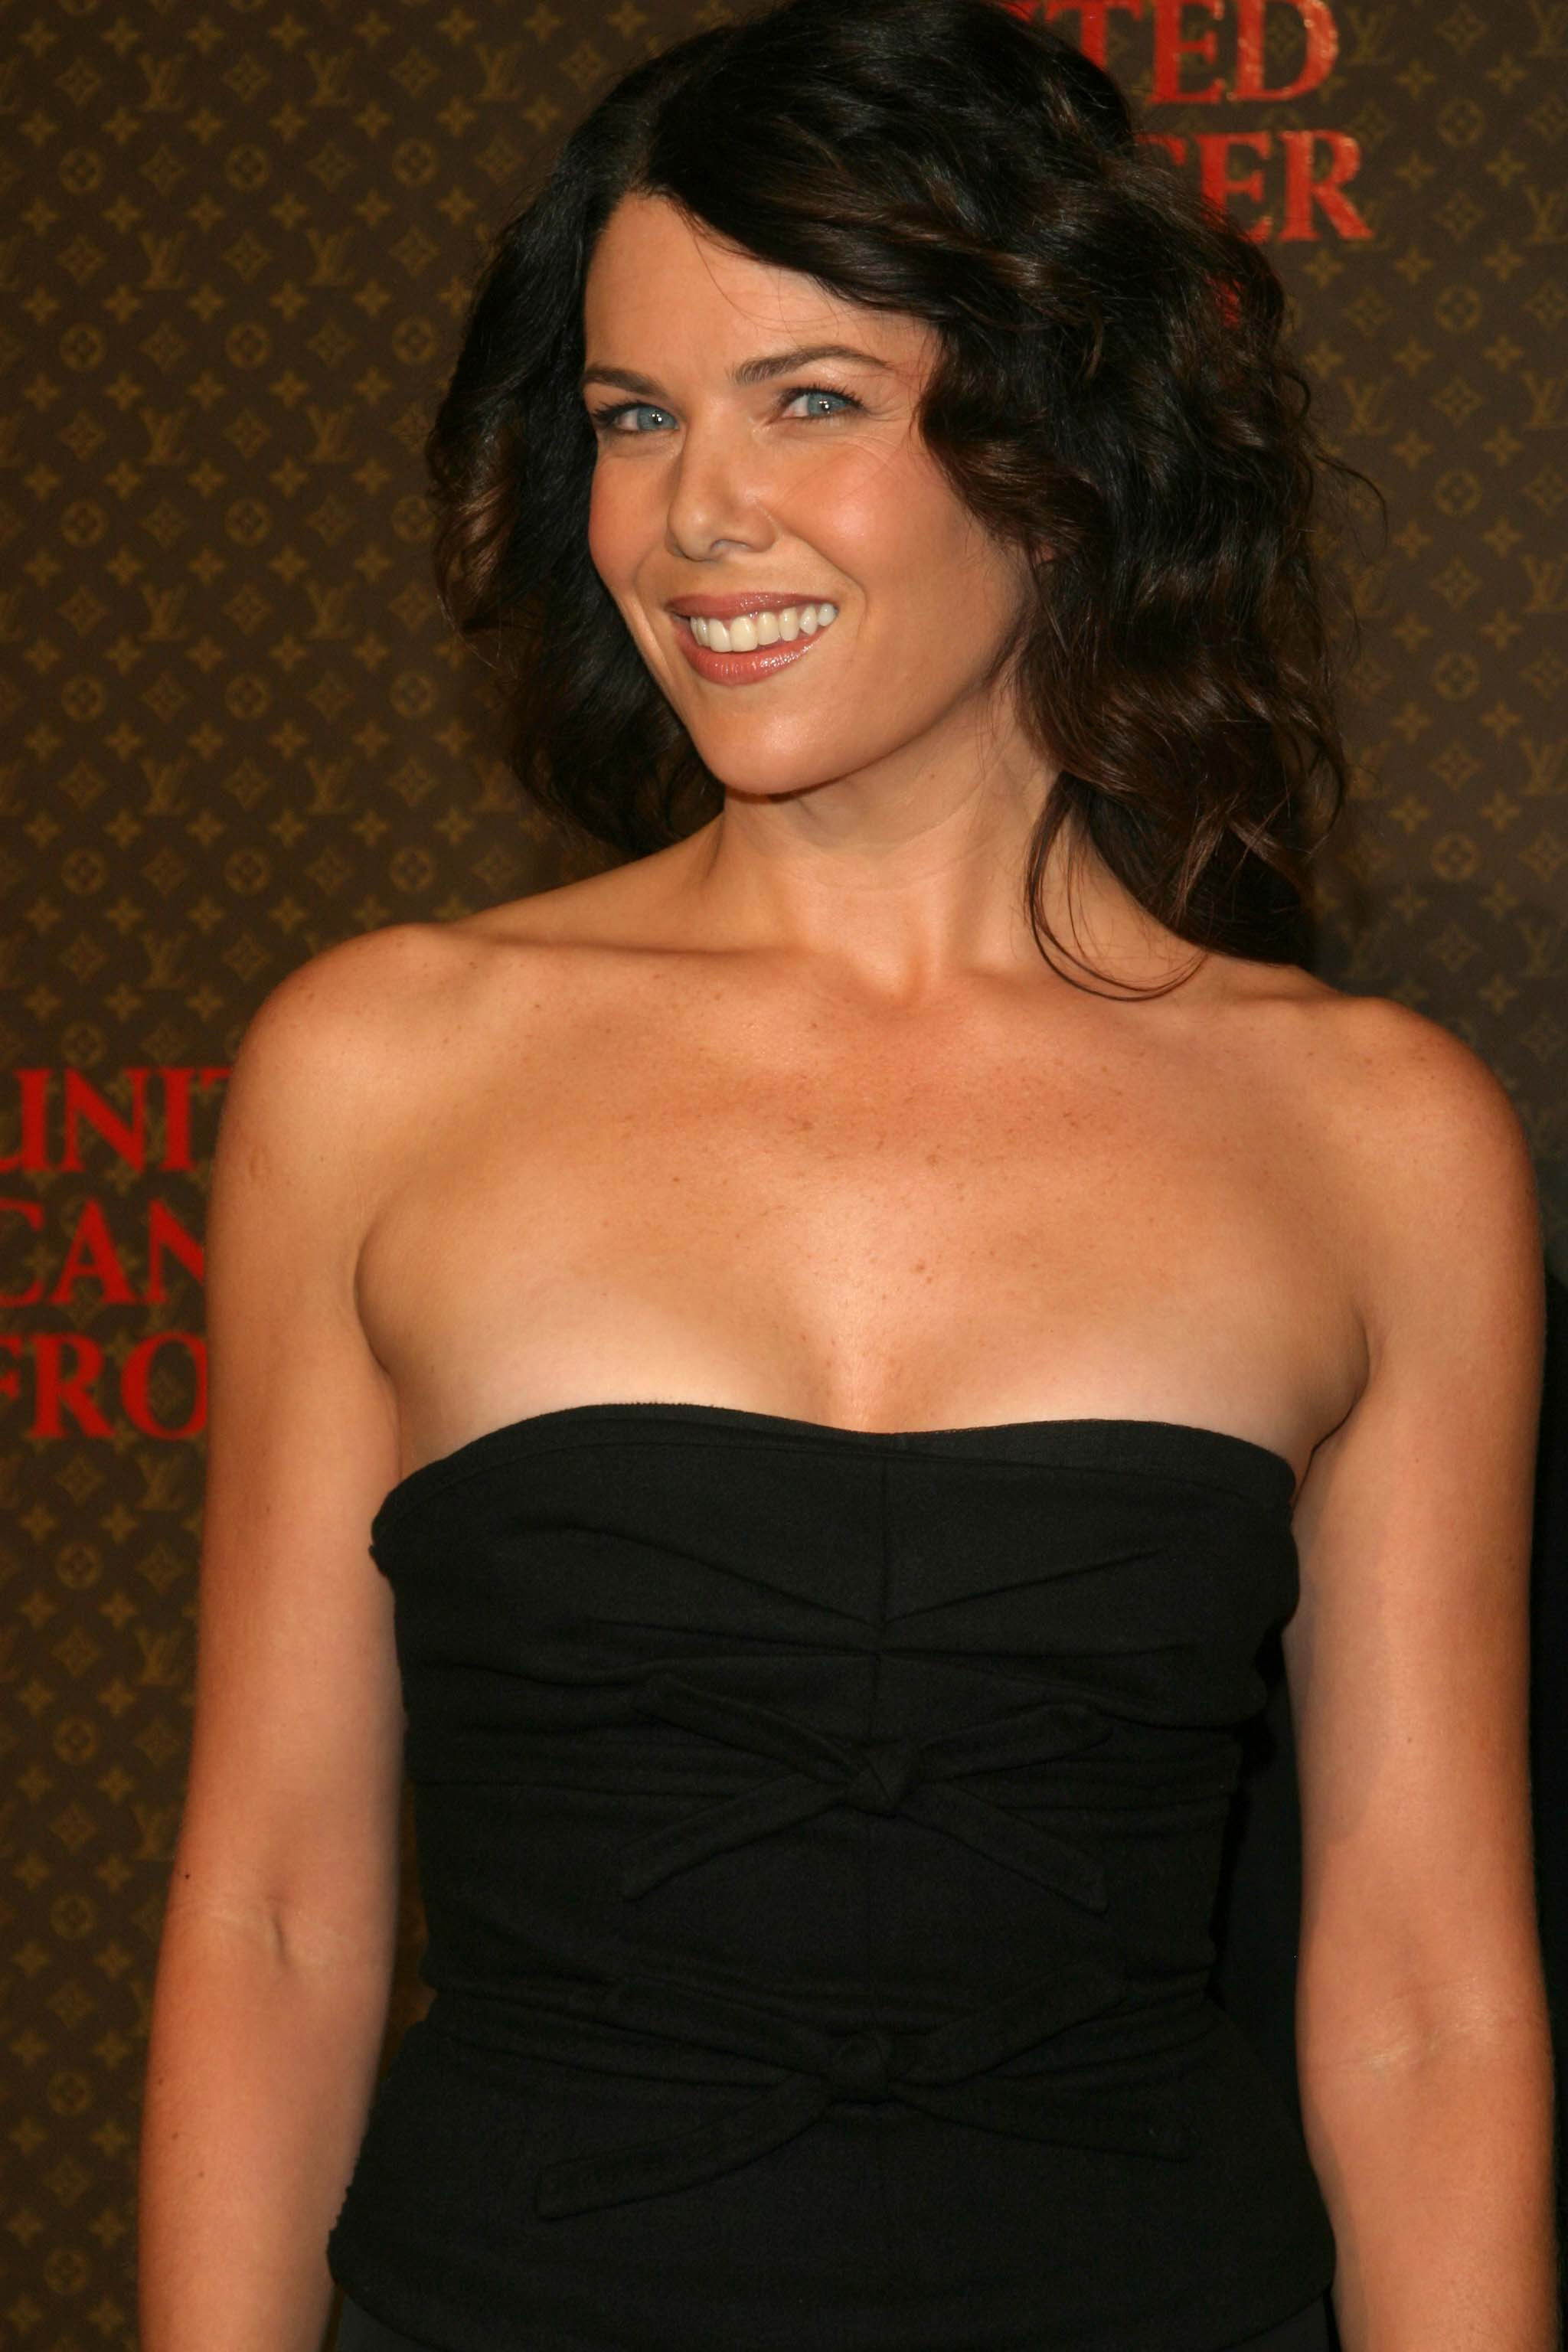 Lauren Graham - Page 3 pictures, naked, oops, topless ...